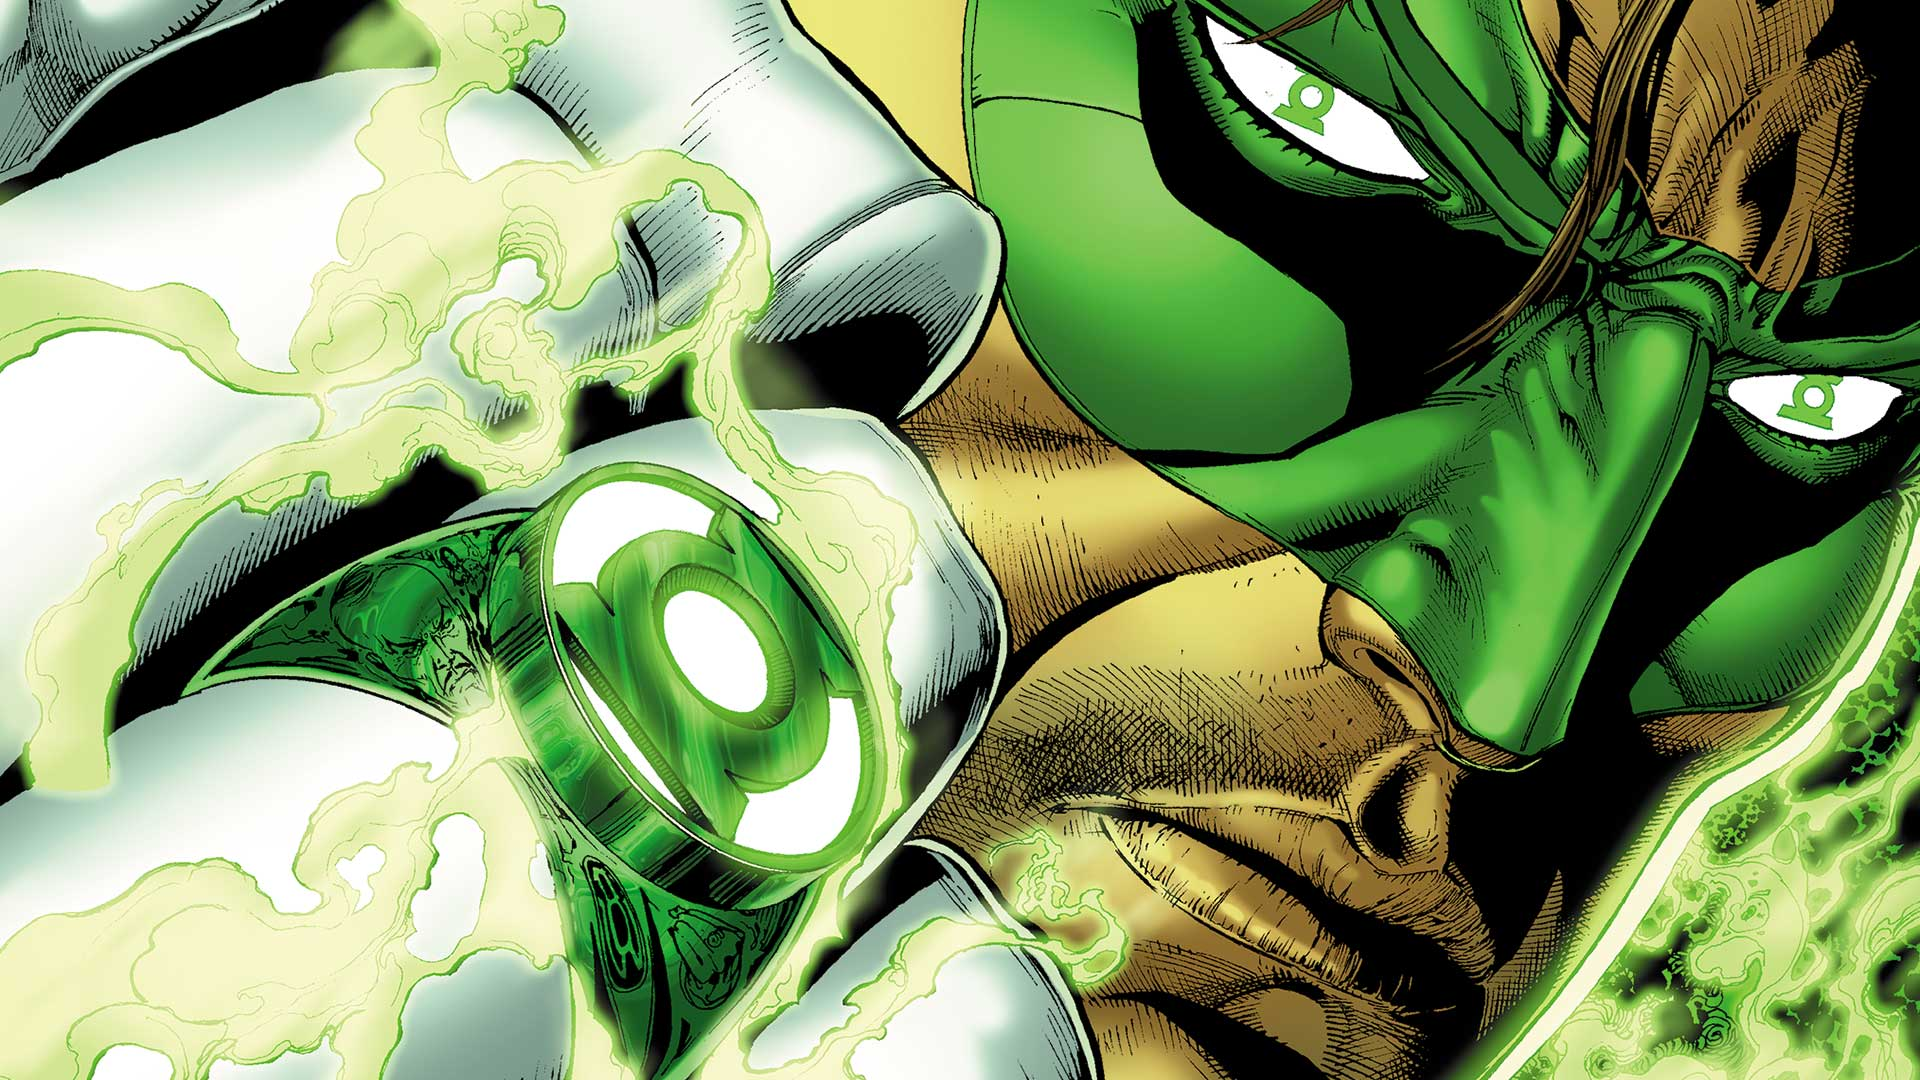 Green Lantern (DC Comics)